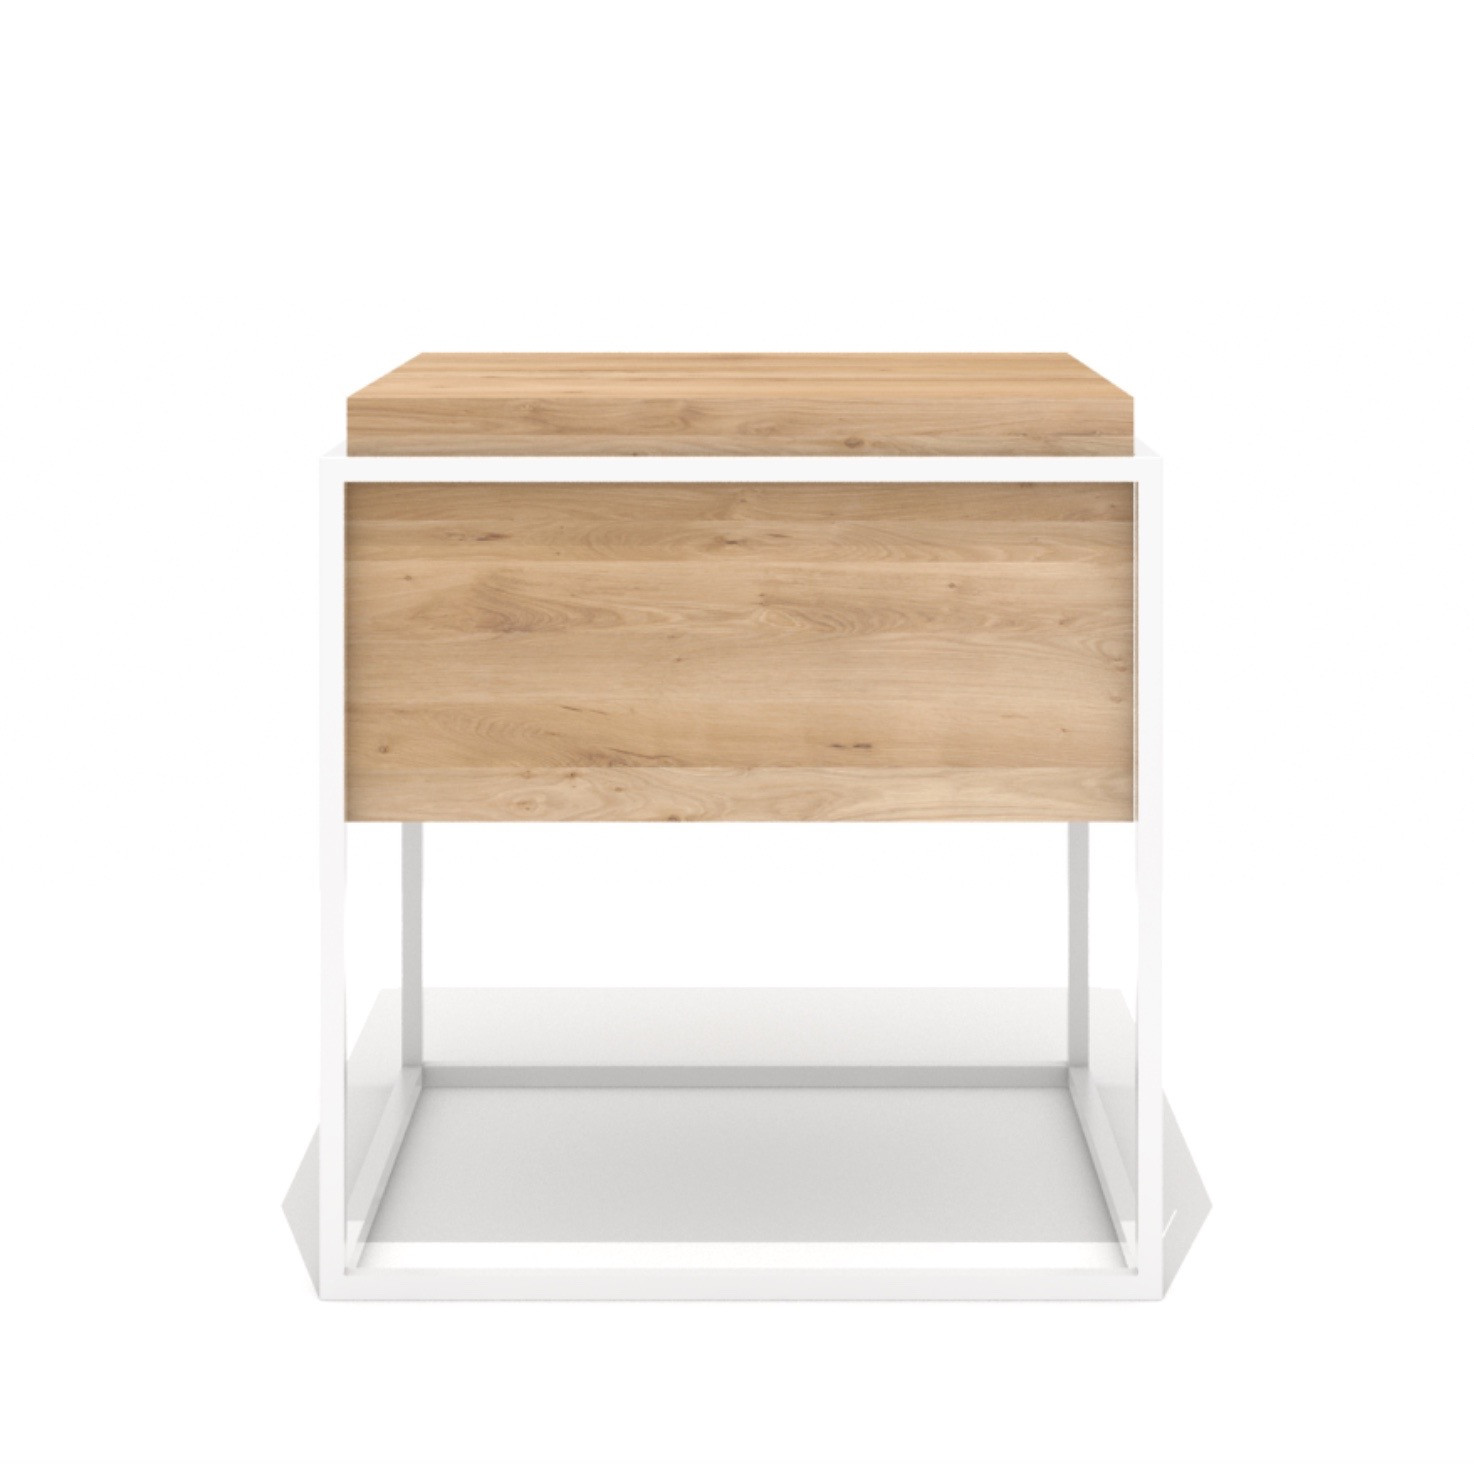 Sidetable Wit Strak.Universo Positivo Monolit Side Table Medium Wit